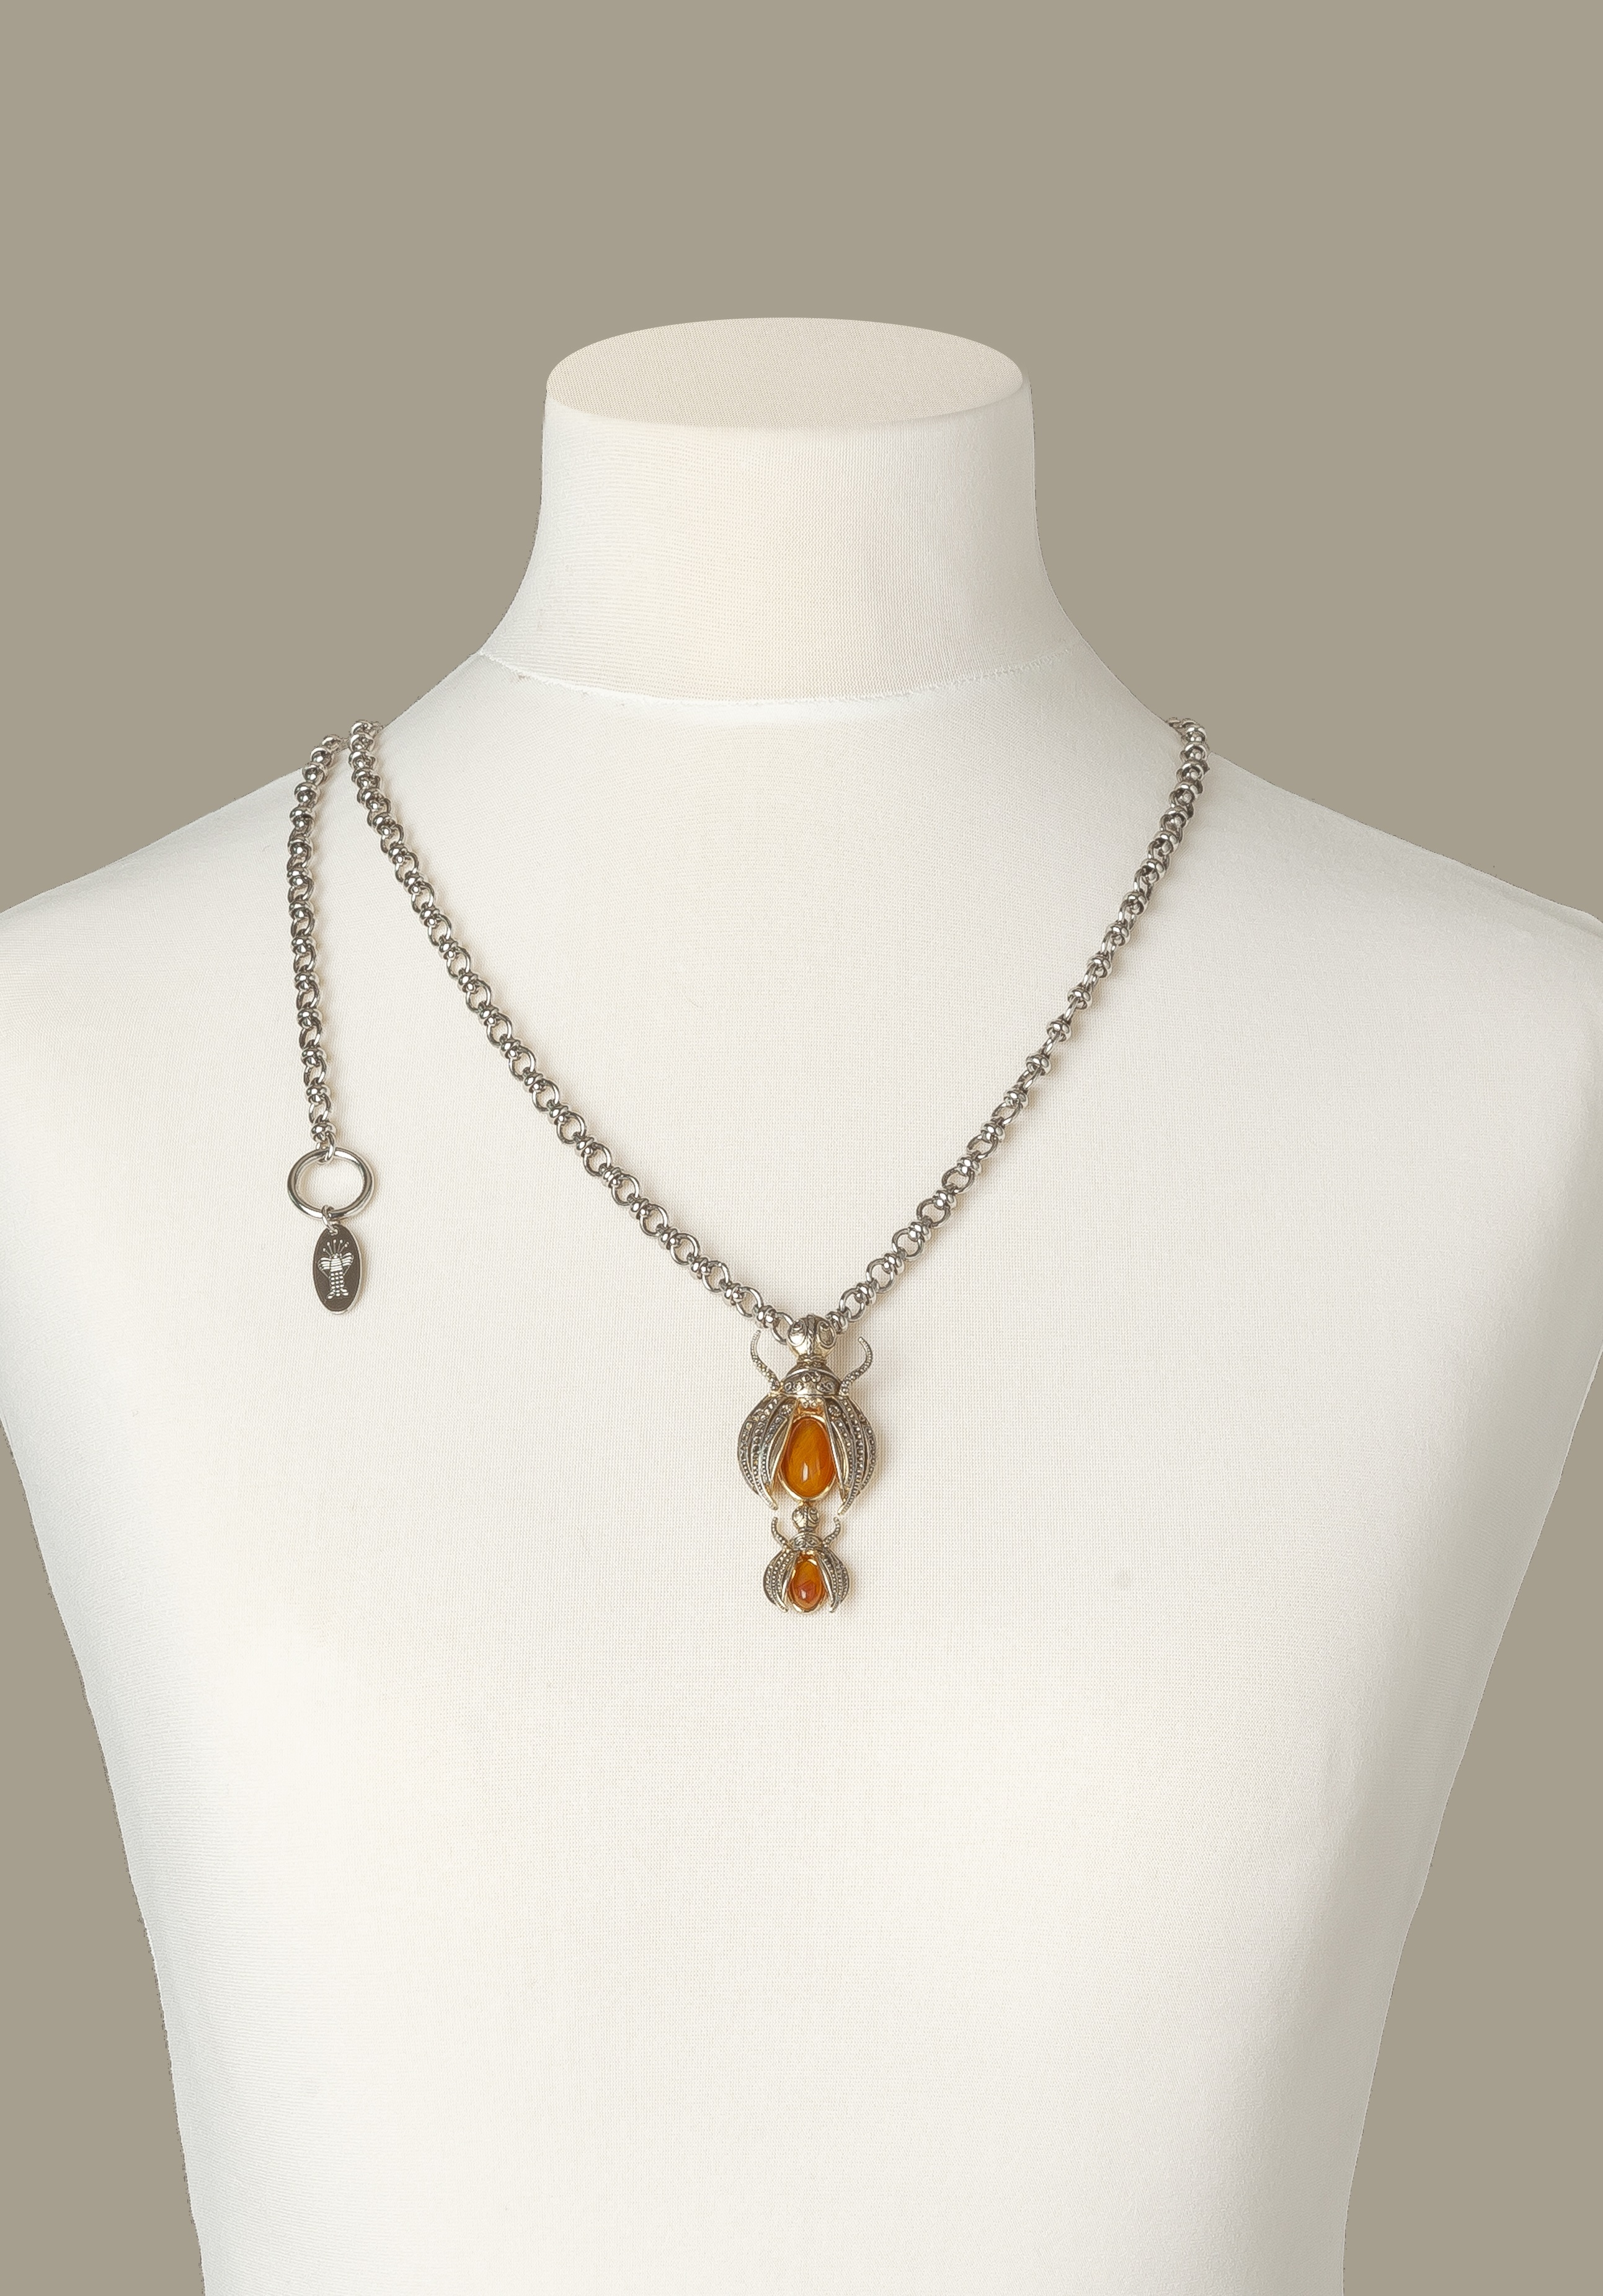 Silver Scarab Luxury Necklace by Sonia Petroff on curated-crowd.com